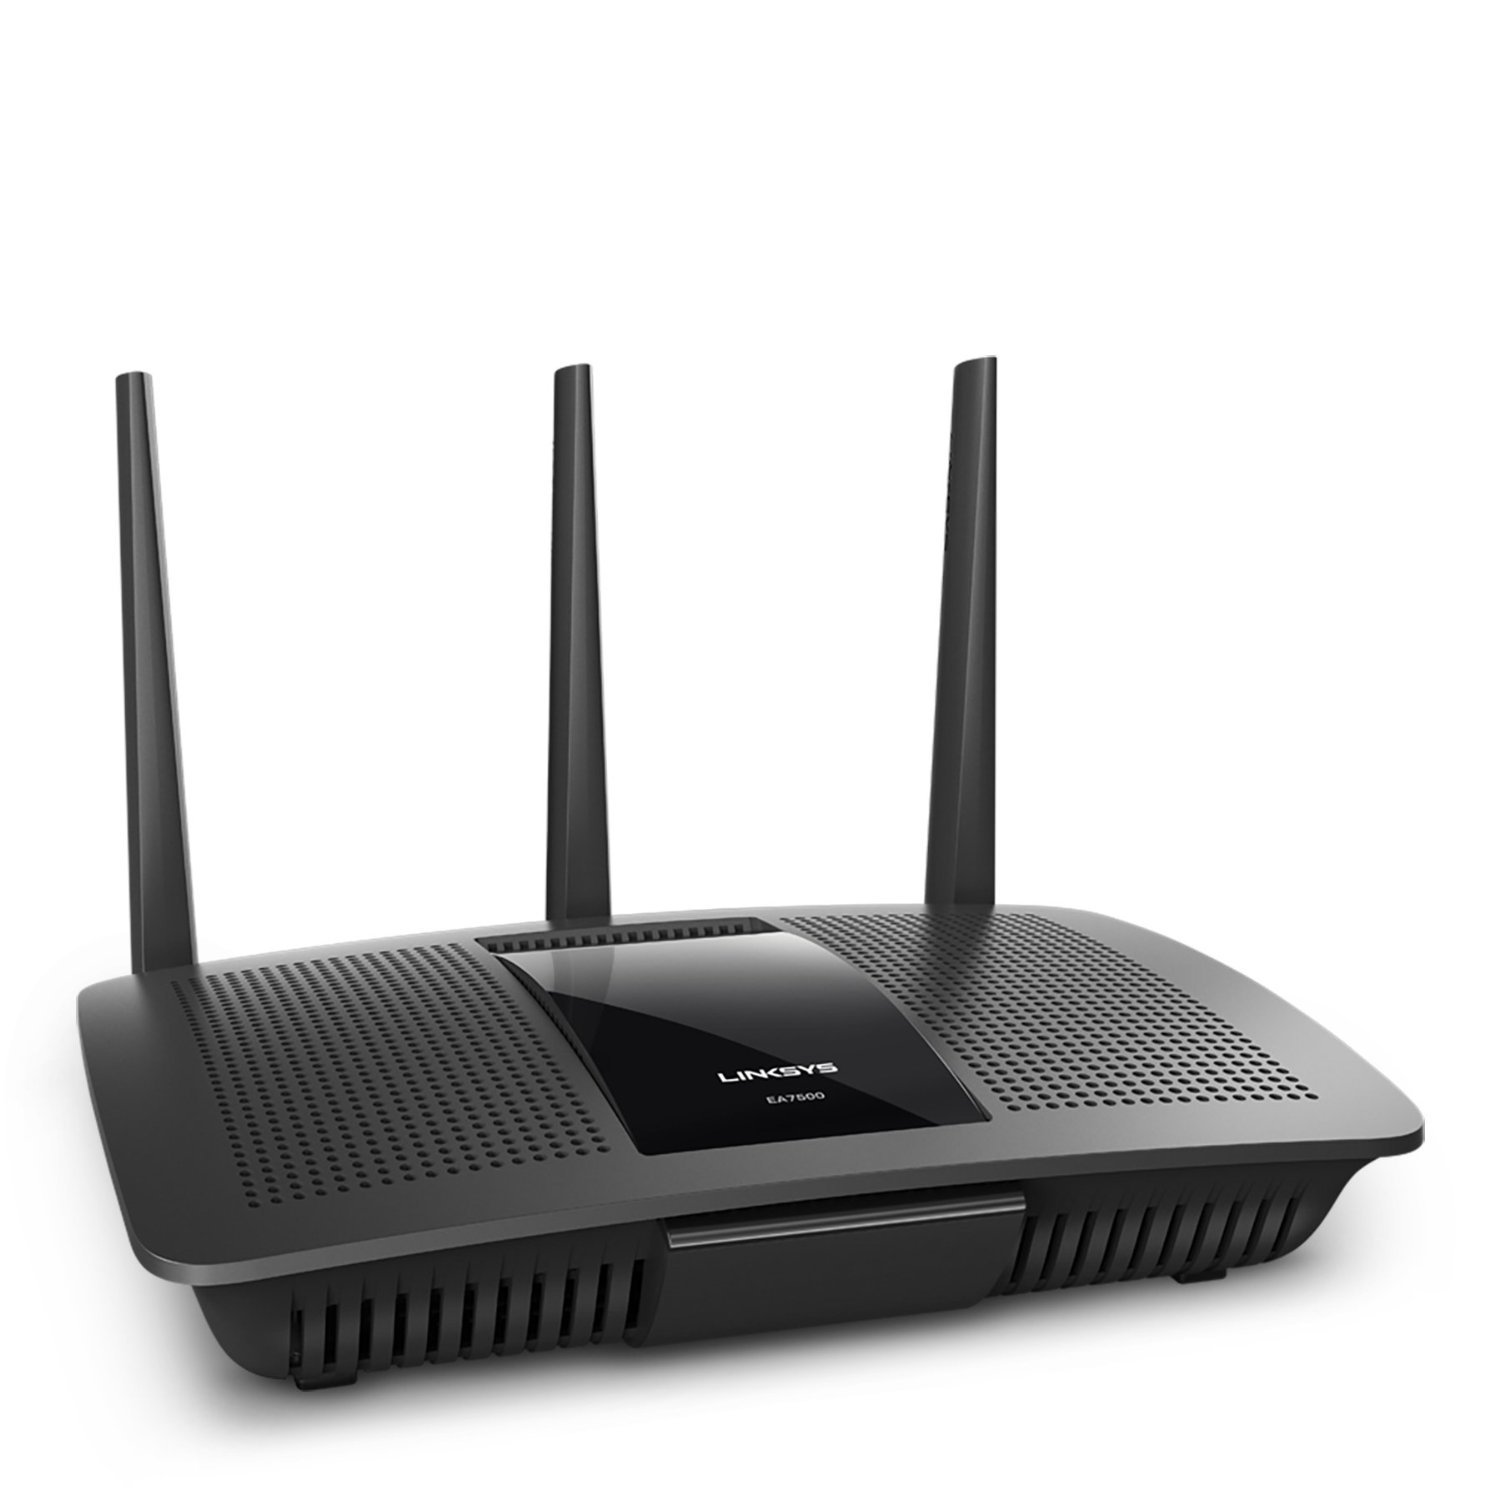 Linksys AC1900 Dual Band Wireless Router Max Stream EA7500 (Renewed) by Linksys